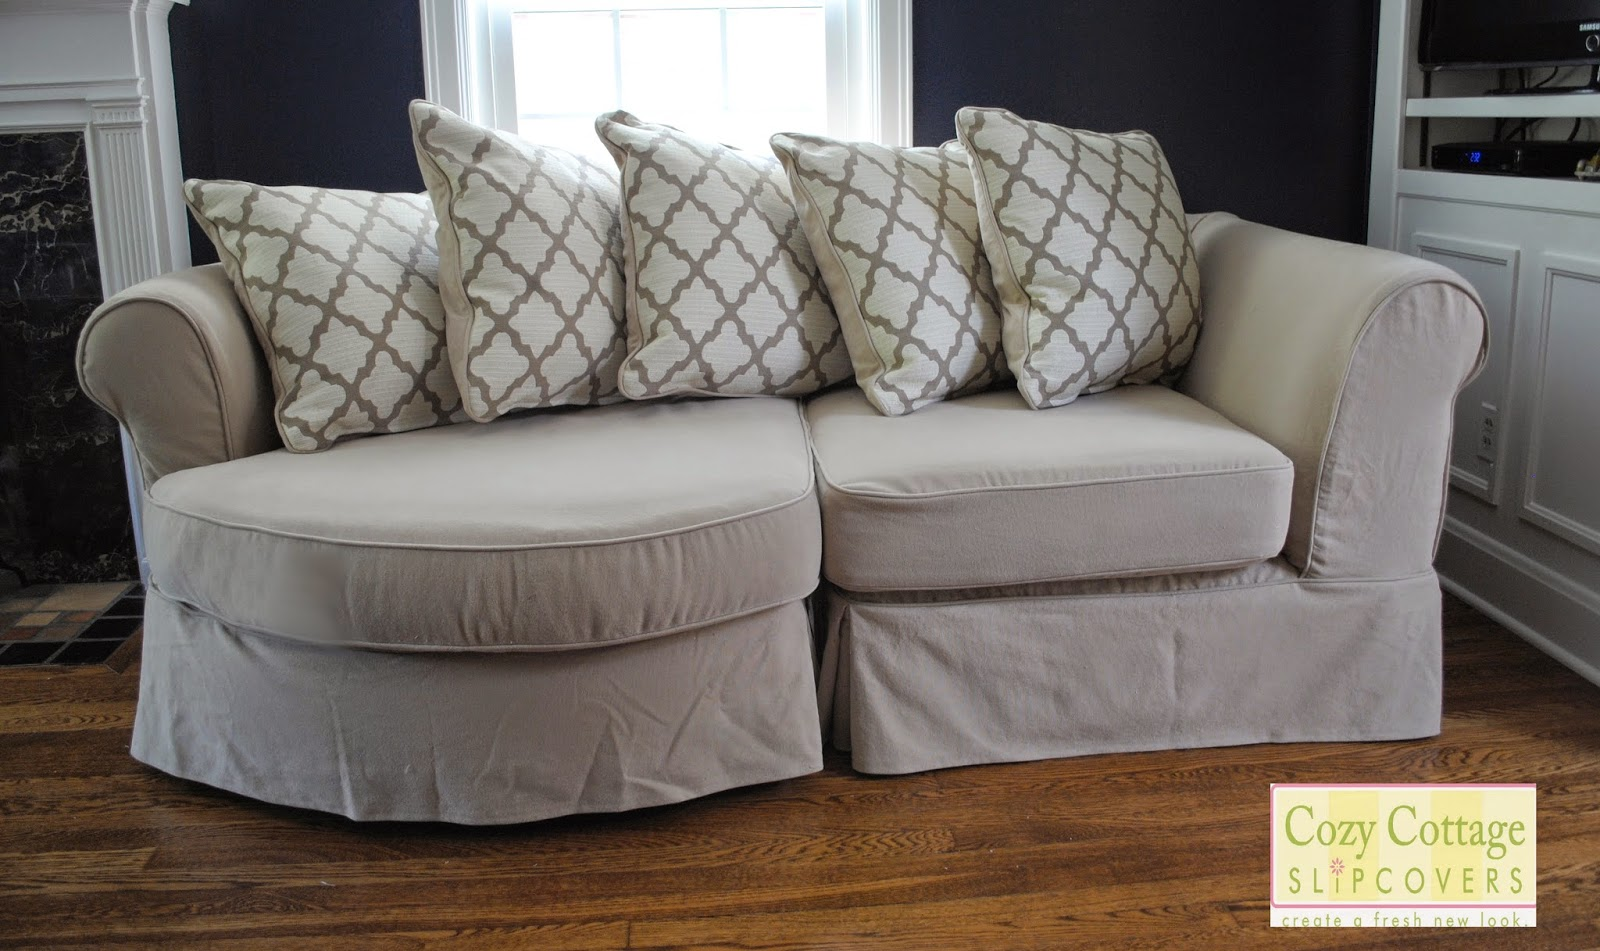 Cozy cottage slipcovers new office chair slipcovers - My Customer Can Have A Whole New Look By Turning Over The Pillows To Match The Body Of The Slipcover She Can Also Choose To Mix Things Up And Turn Over A